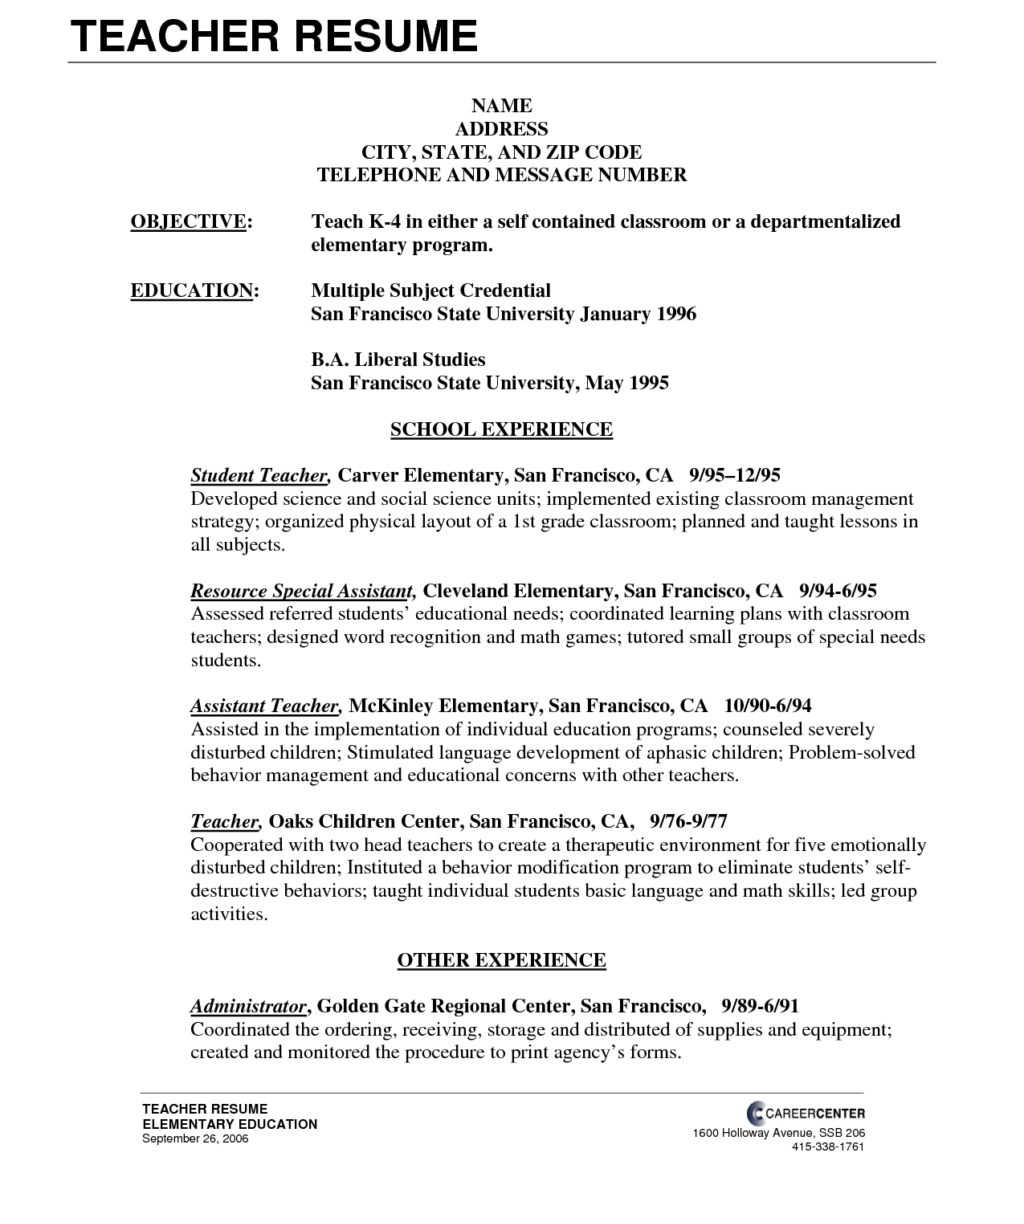 Marvelous Format For Resume Teachers Sample Objectives Pdf Philippines Preschool Teacher Aide 1024x1224 8